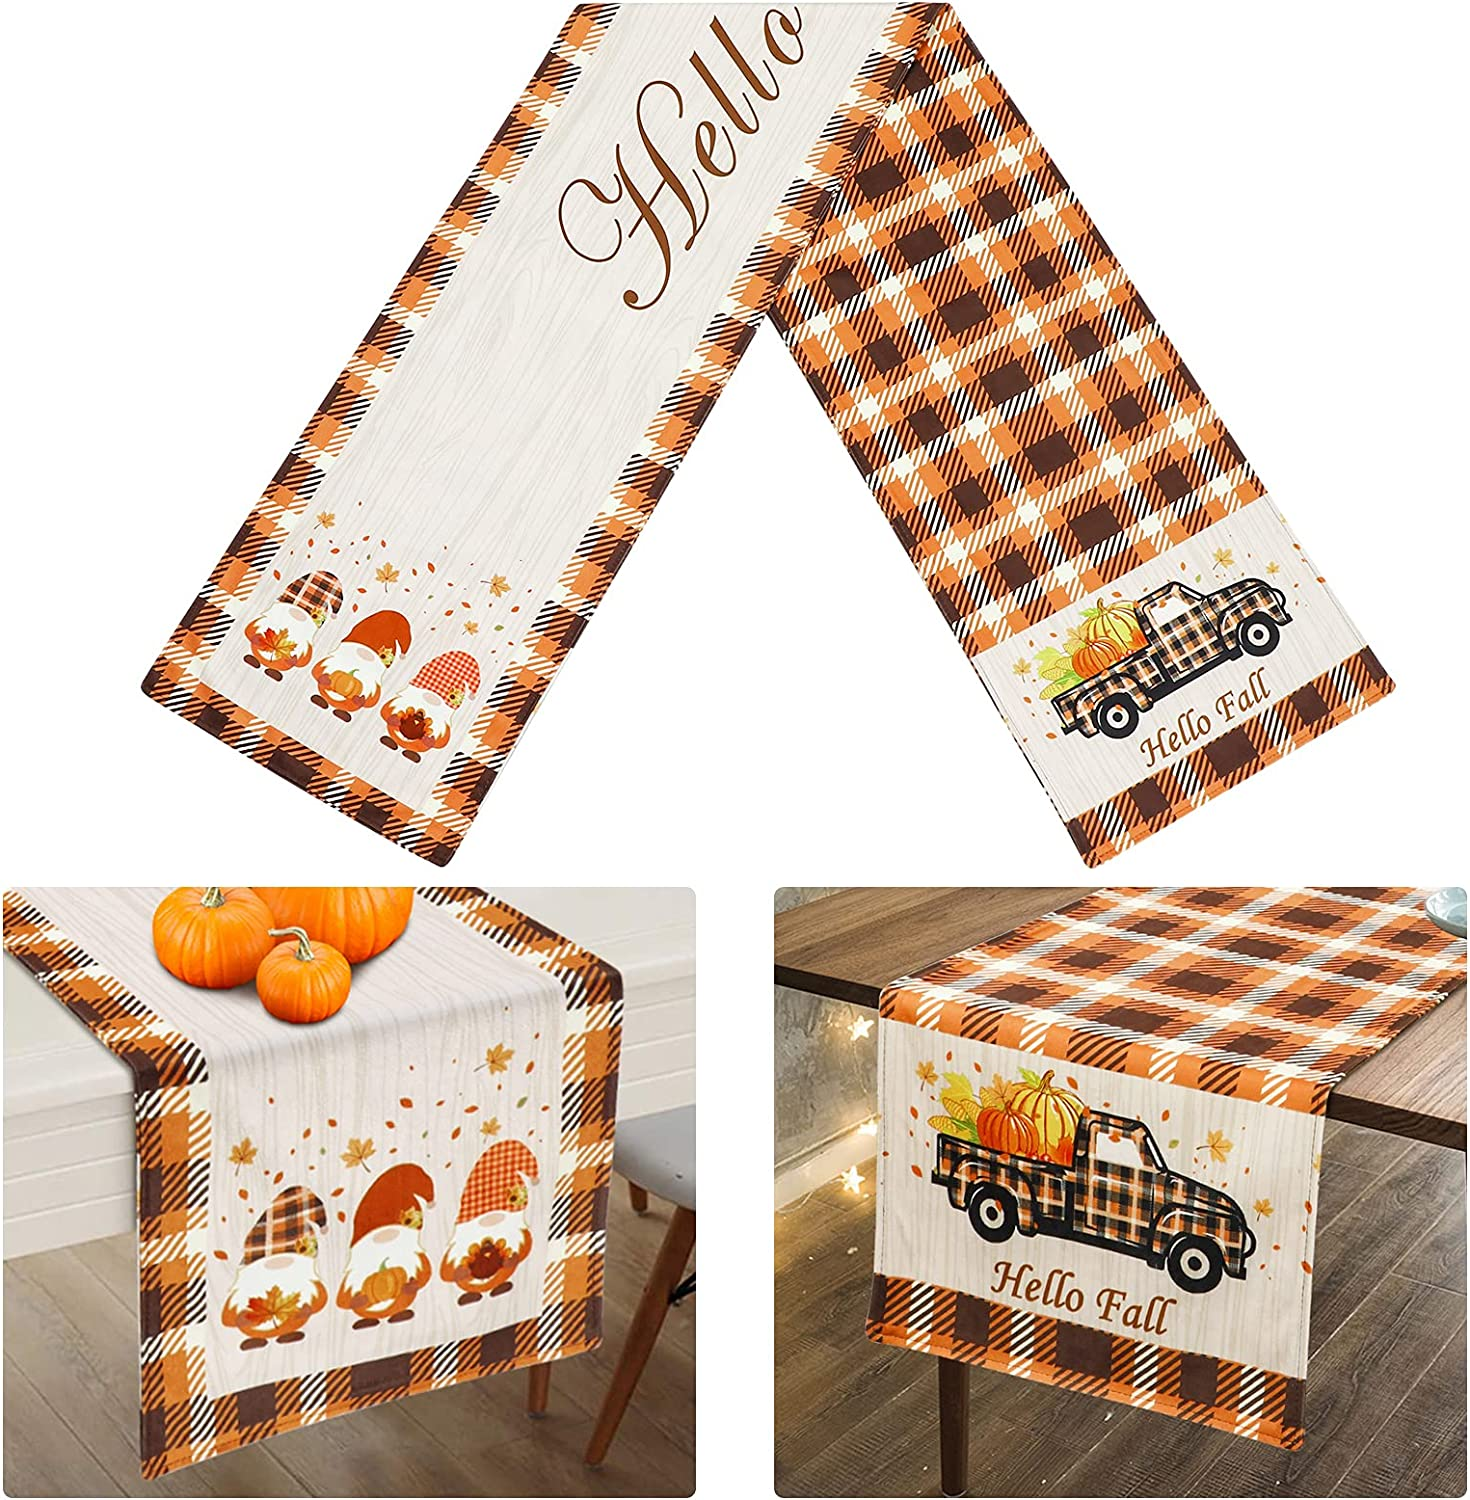 AerWo Fall Table Runner, Double Sided Buffalo Check Table Runner Printed with Pumpkins, Fall Leaves, Gnomes, Hello Fall, for Outdoor Indoor Dinner Thanksgiving Party Fall Table Decor (72 x 13 Inch)